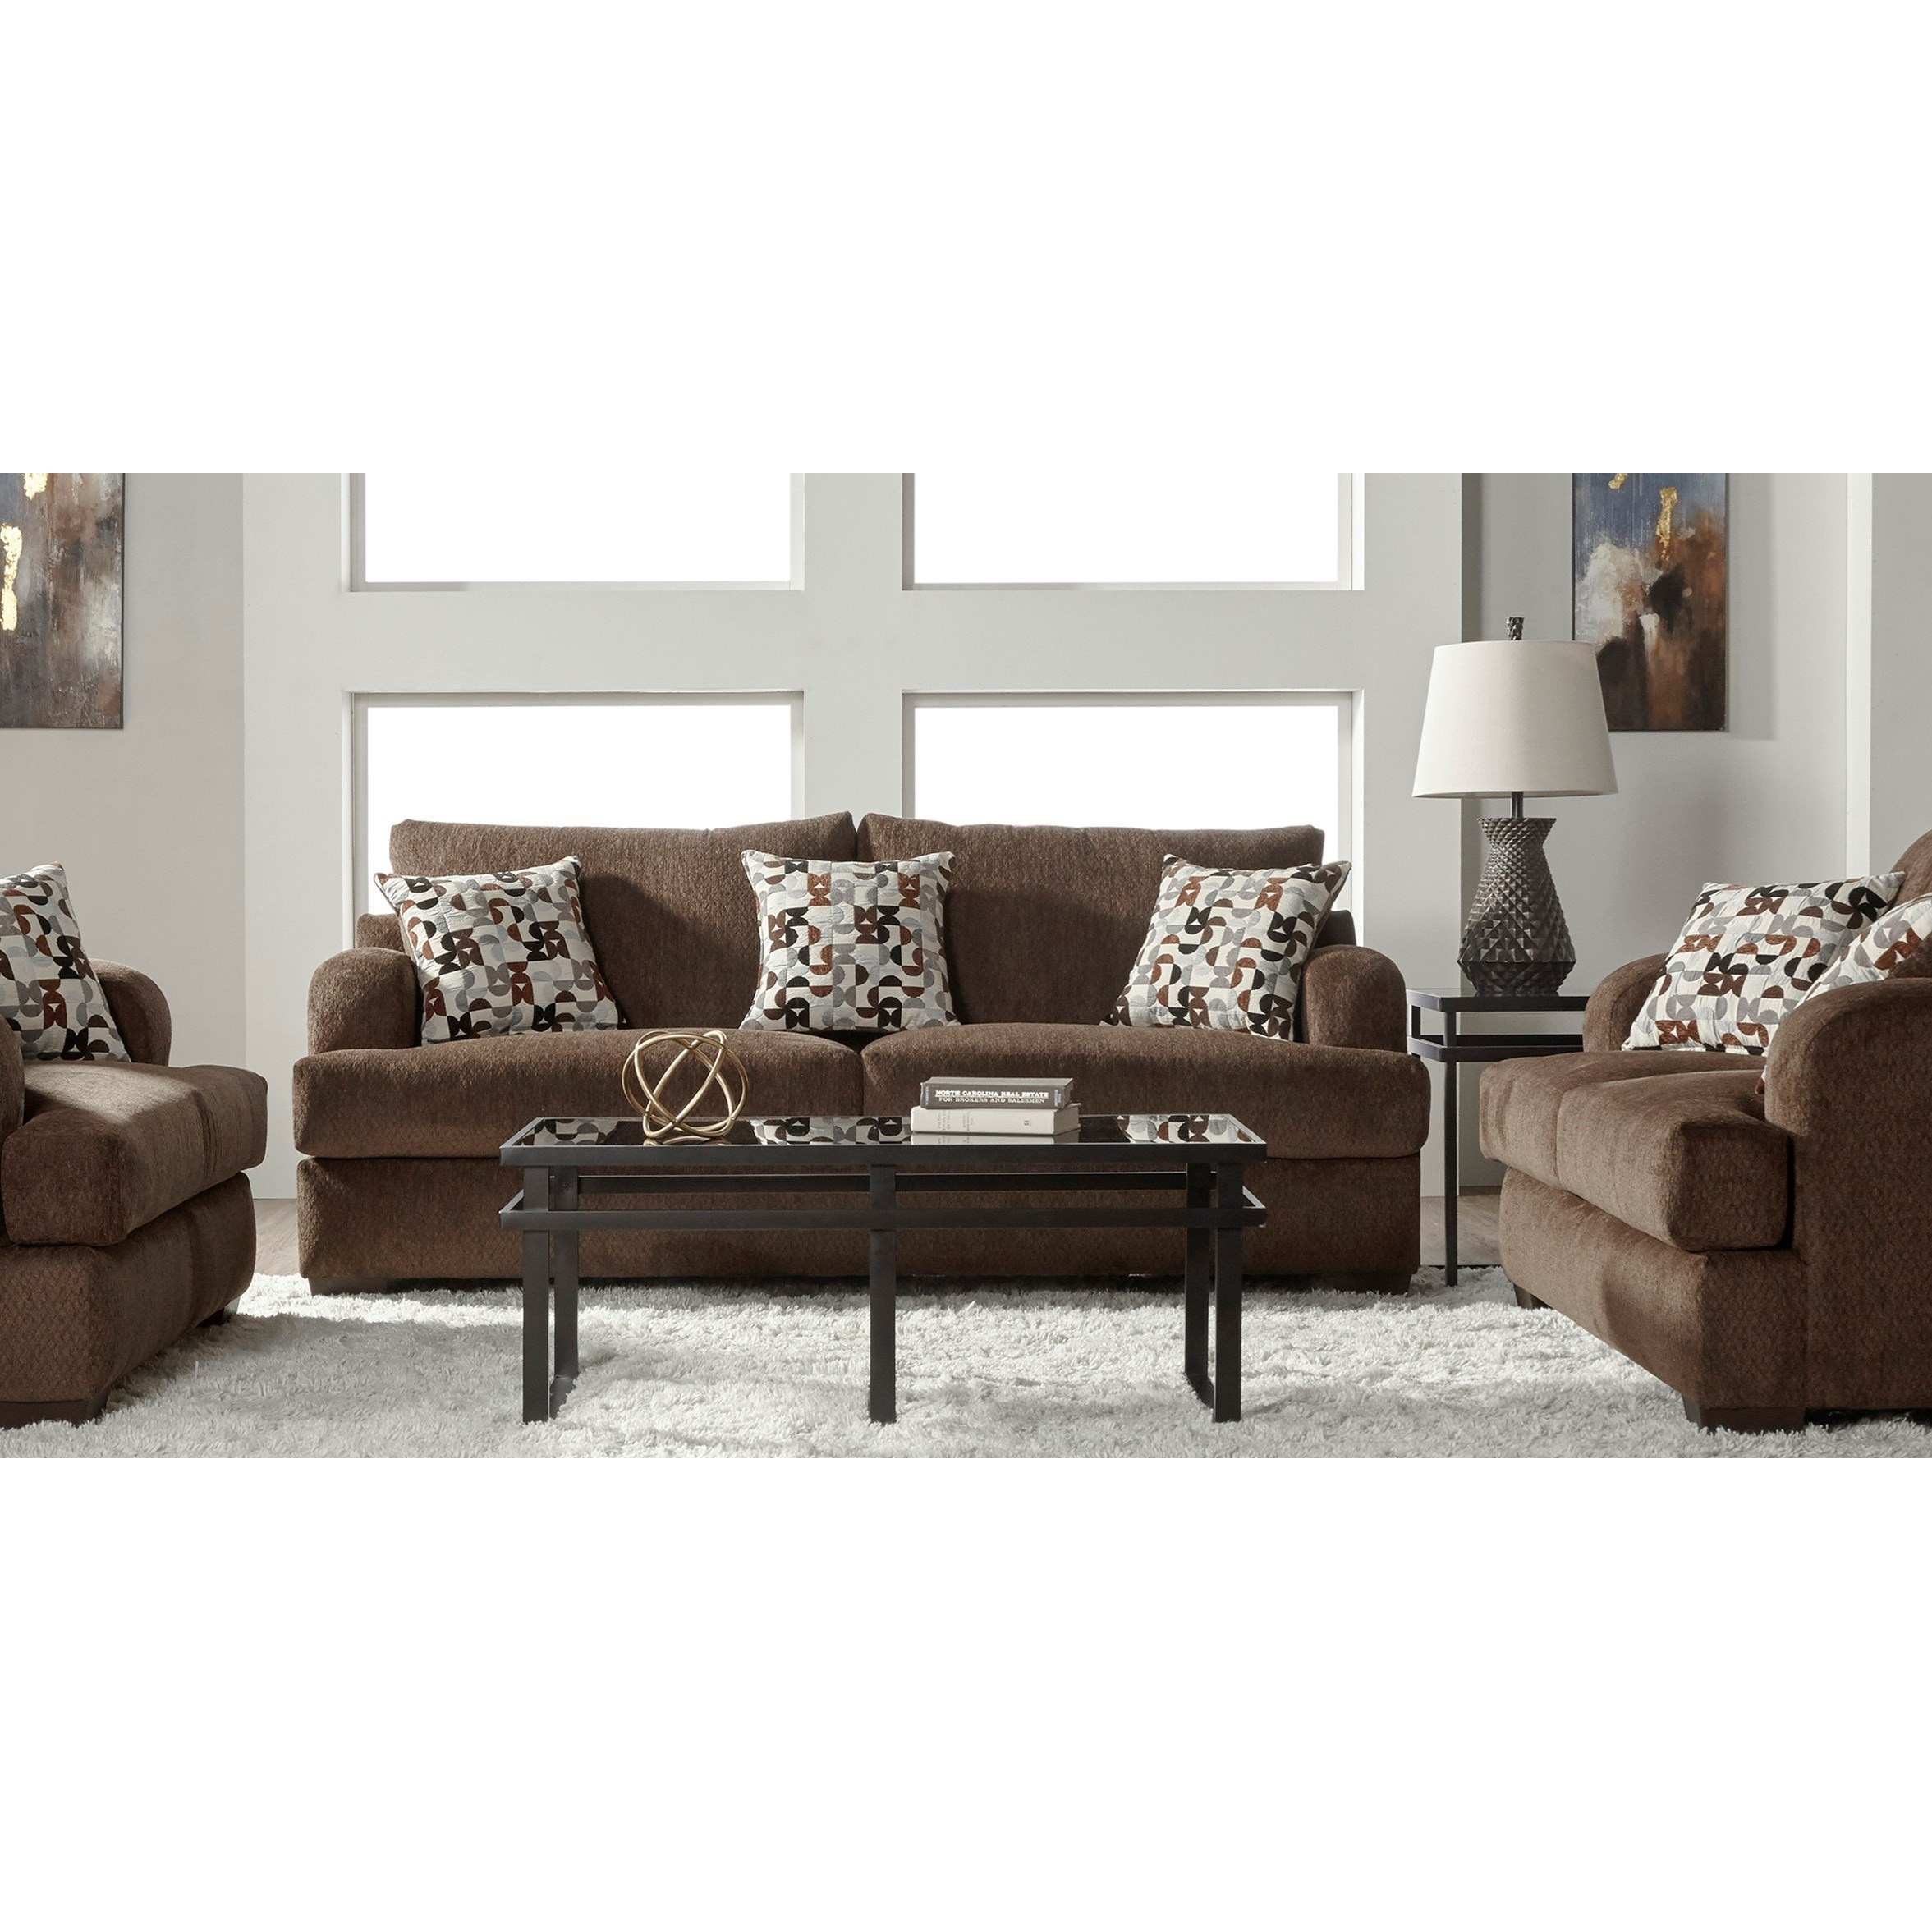 Serta Upholstery by Hughes Furniture 14100 Stationary Living Room ...